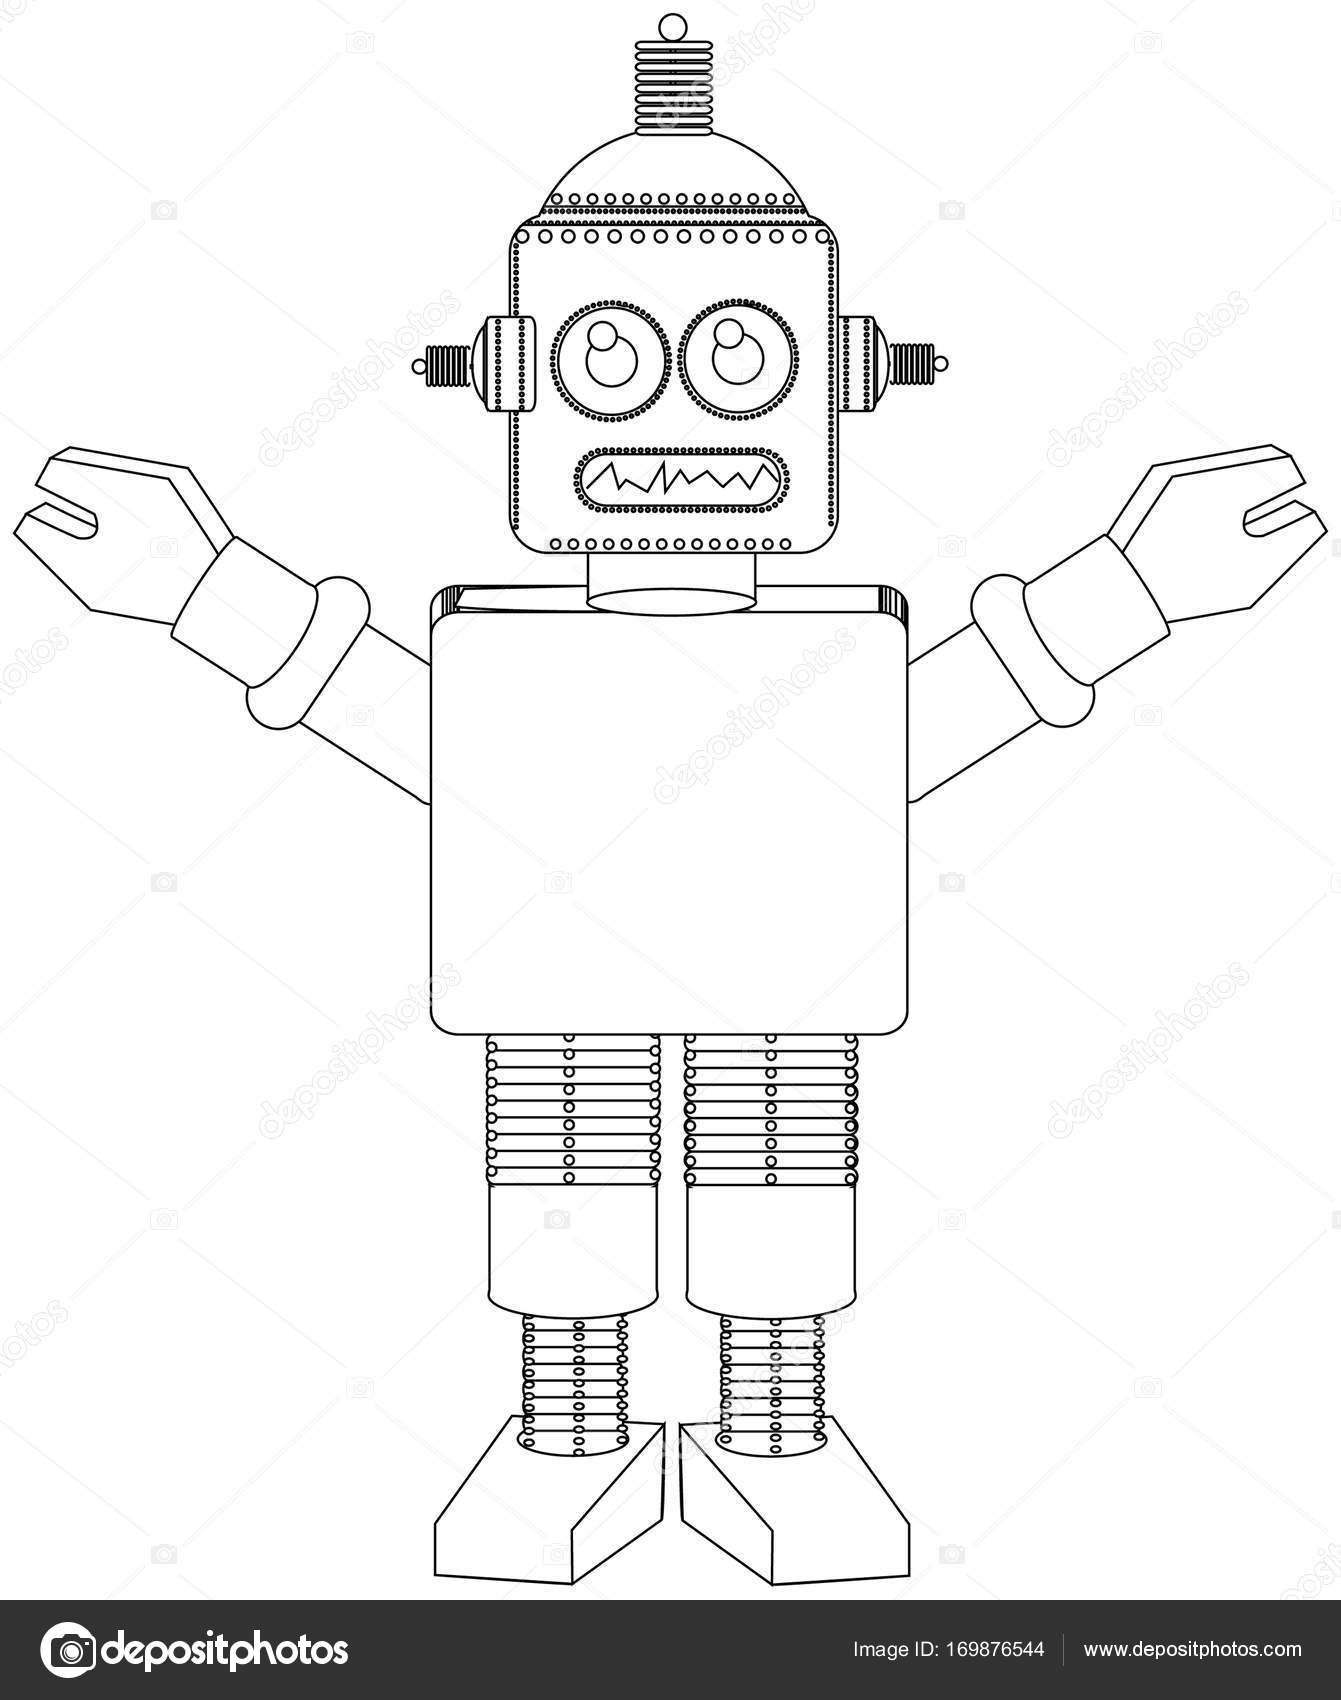 Robot coloring book line drawing — Stock Photo © jamesstar #169876544